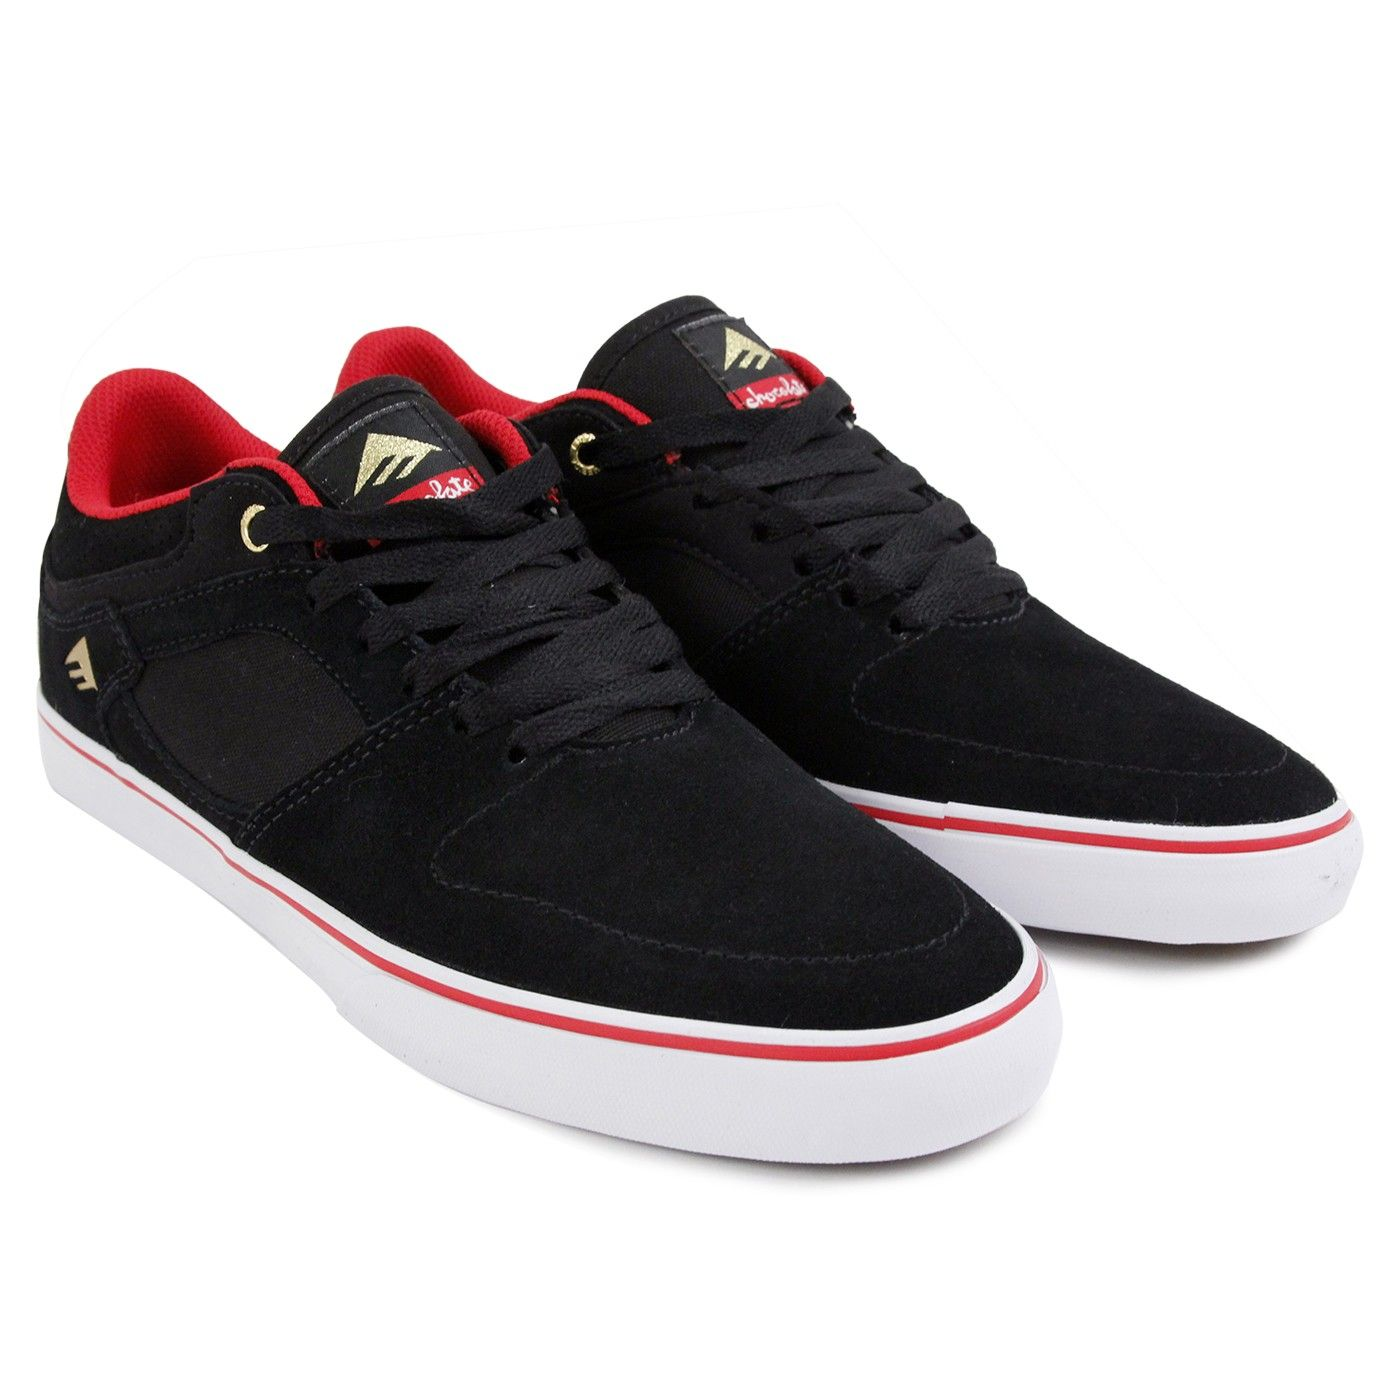 new products ac27e 21a10 The Hsu Low Vulc x Chocolate Shoes in Black   Red   White by Emerica